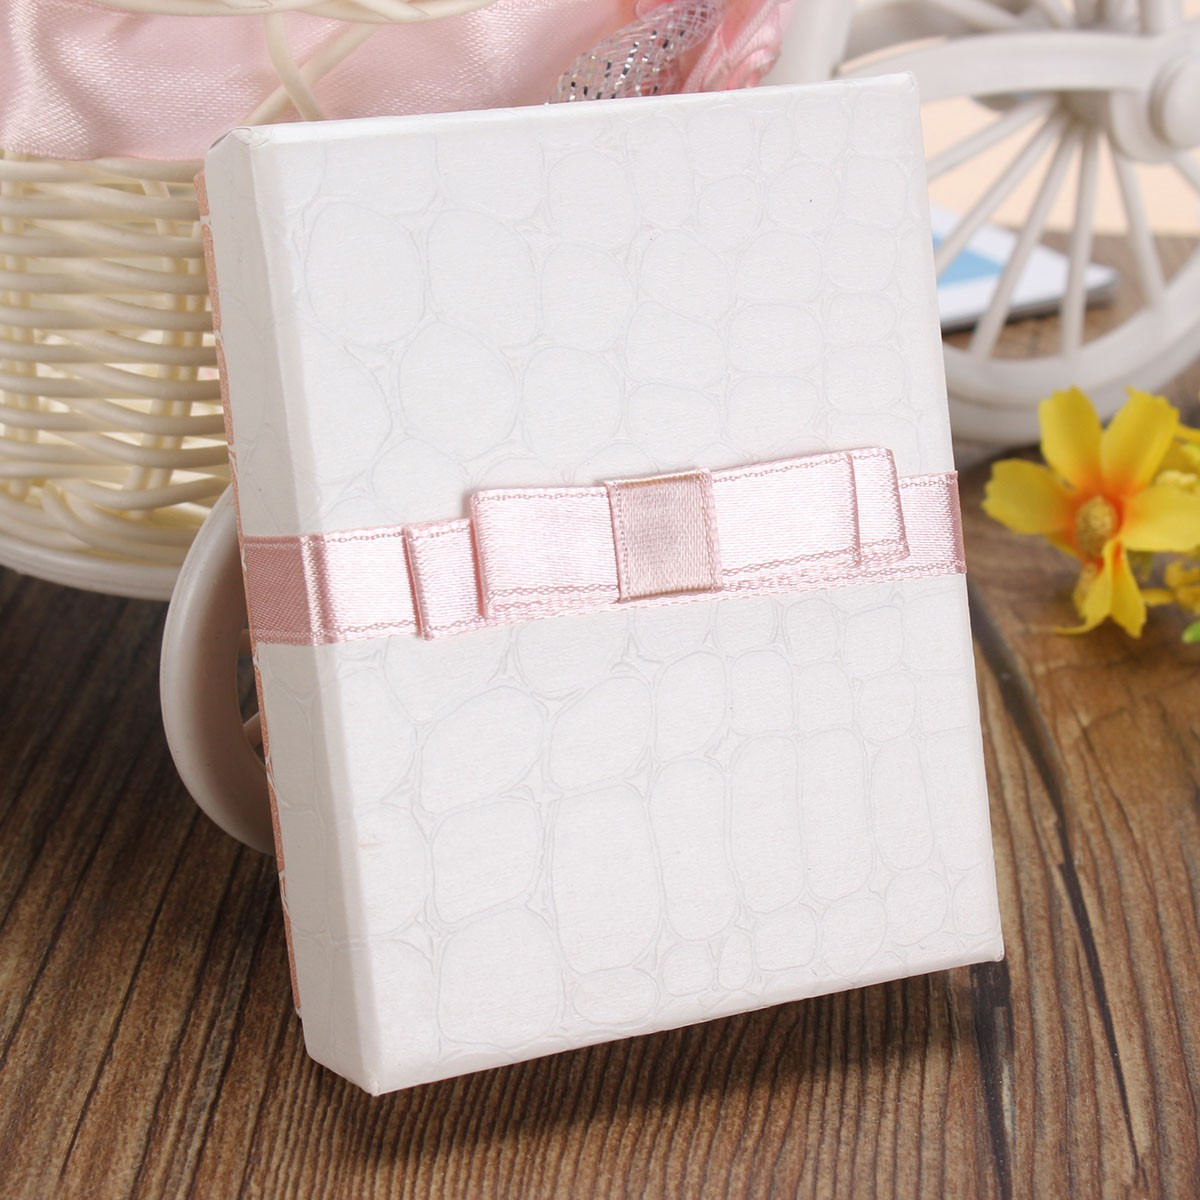 Paper Square Bowknot Necklace Jewelry Packaging Gift Box Storage Case